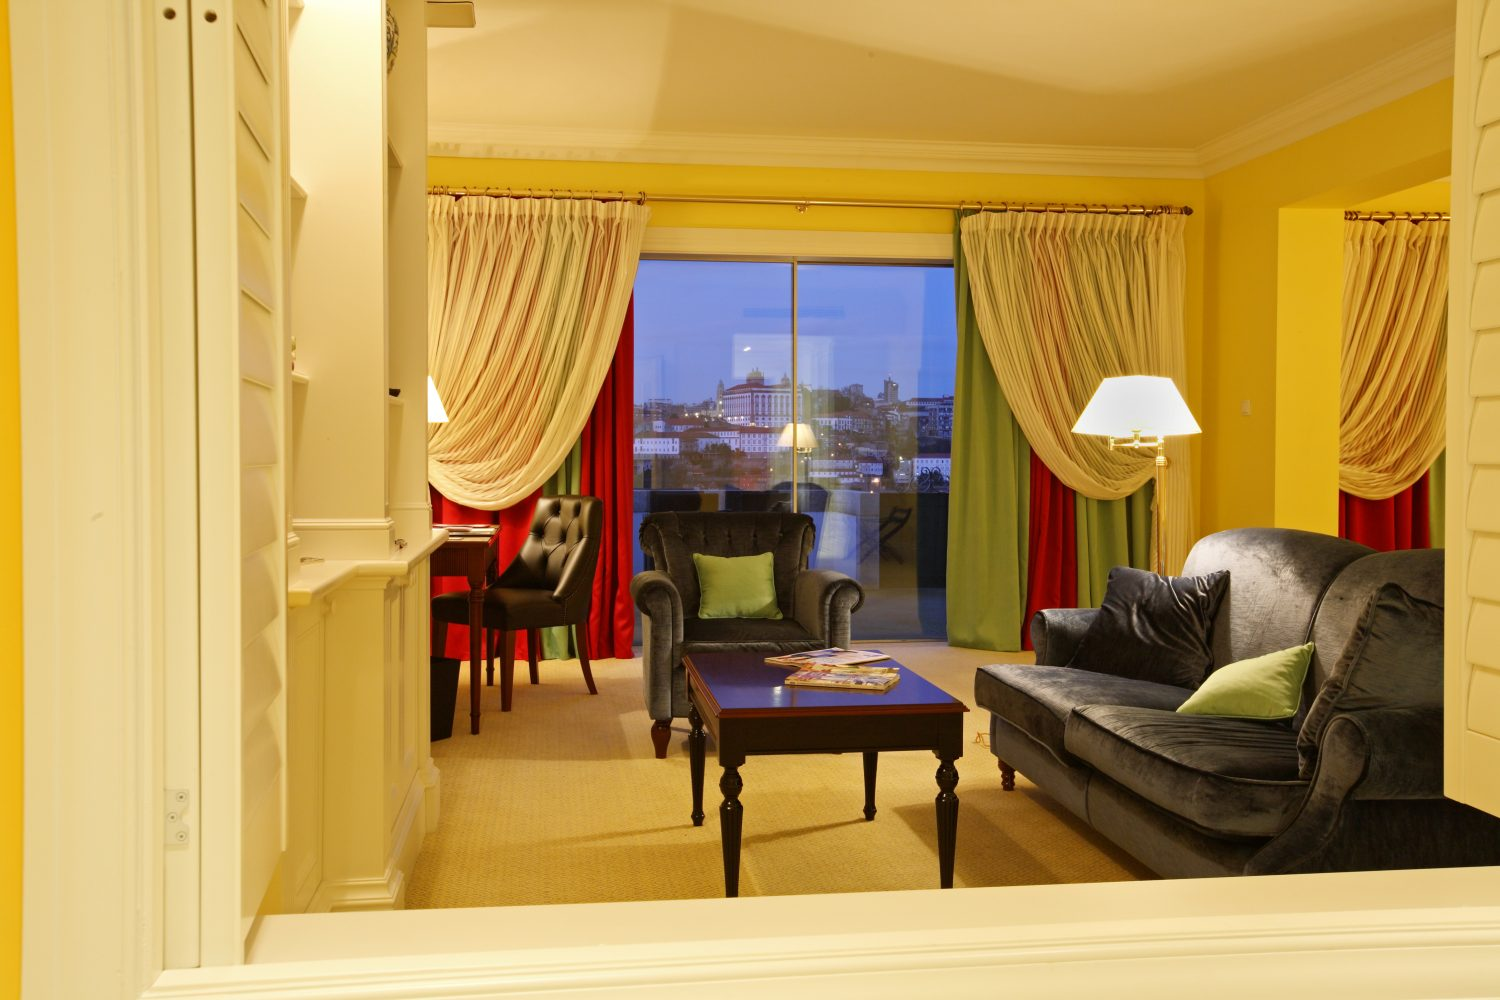 Suite comfort area at Yeatman Relais & Chateaux Hotel